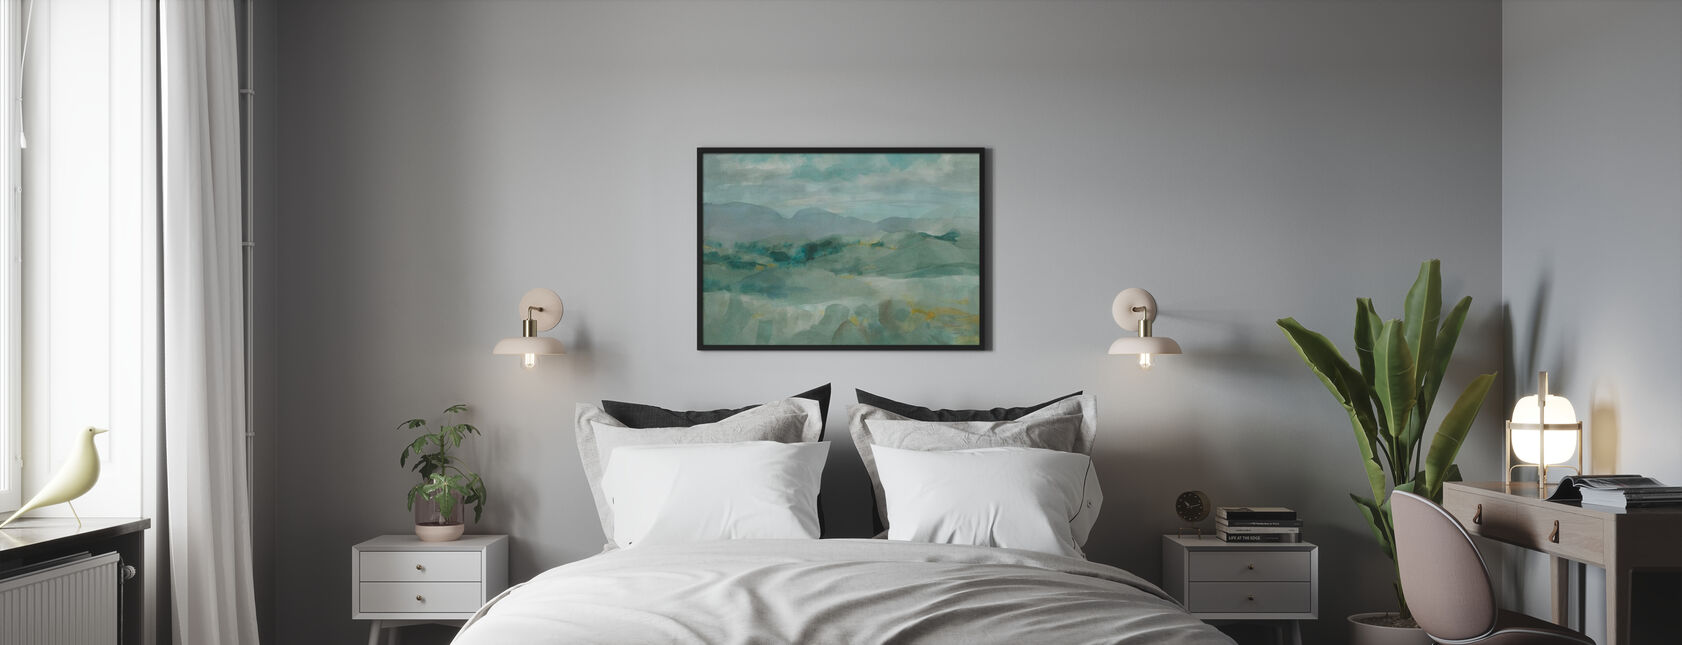 Green Mountain View - Poster - Bedroom